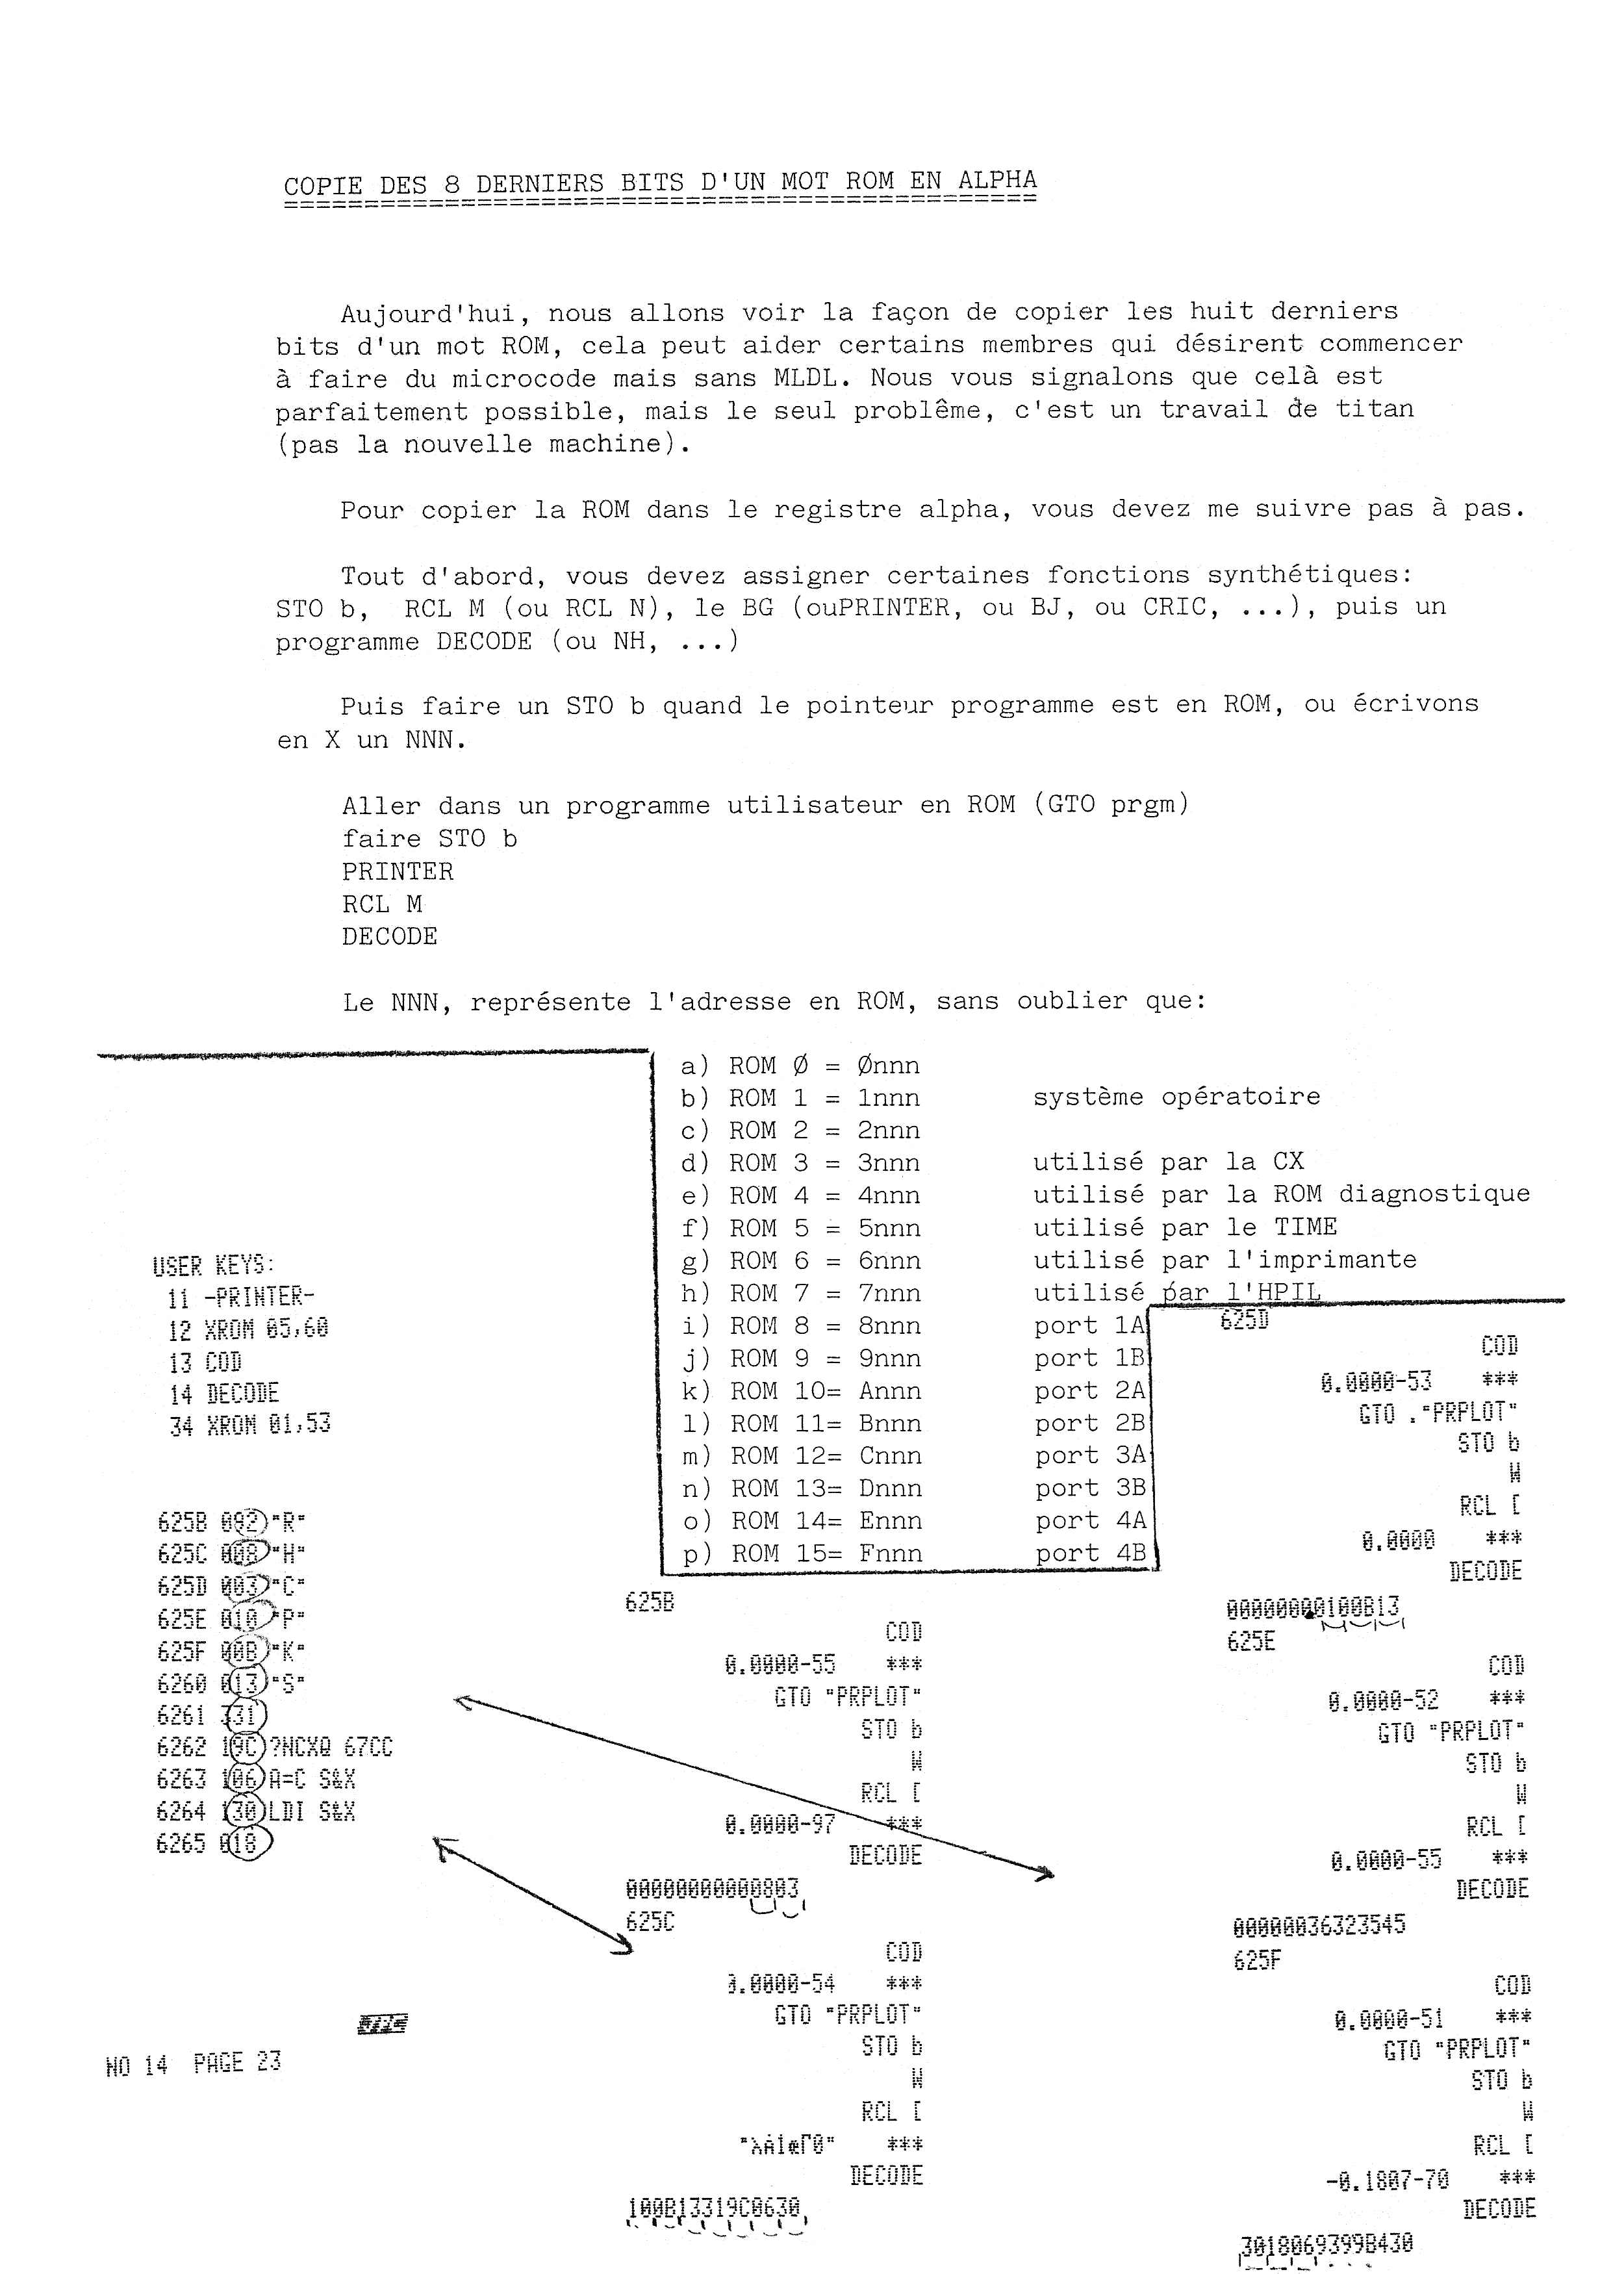 Jp-14-page-27-1000